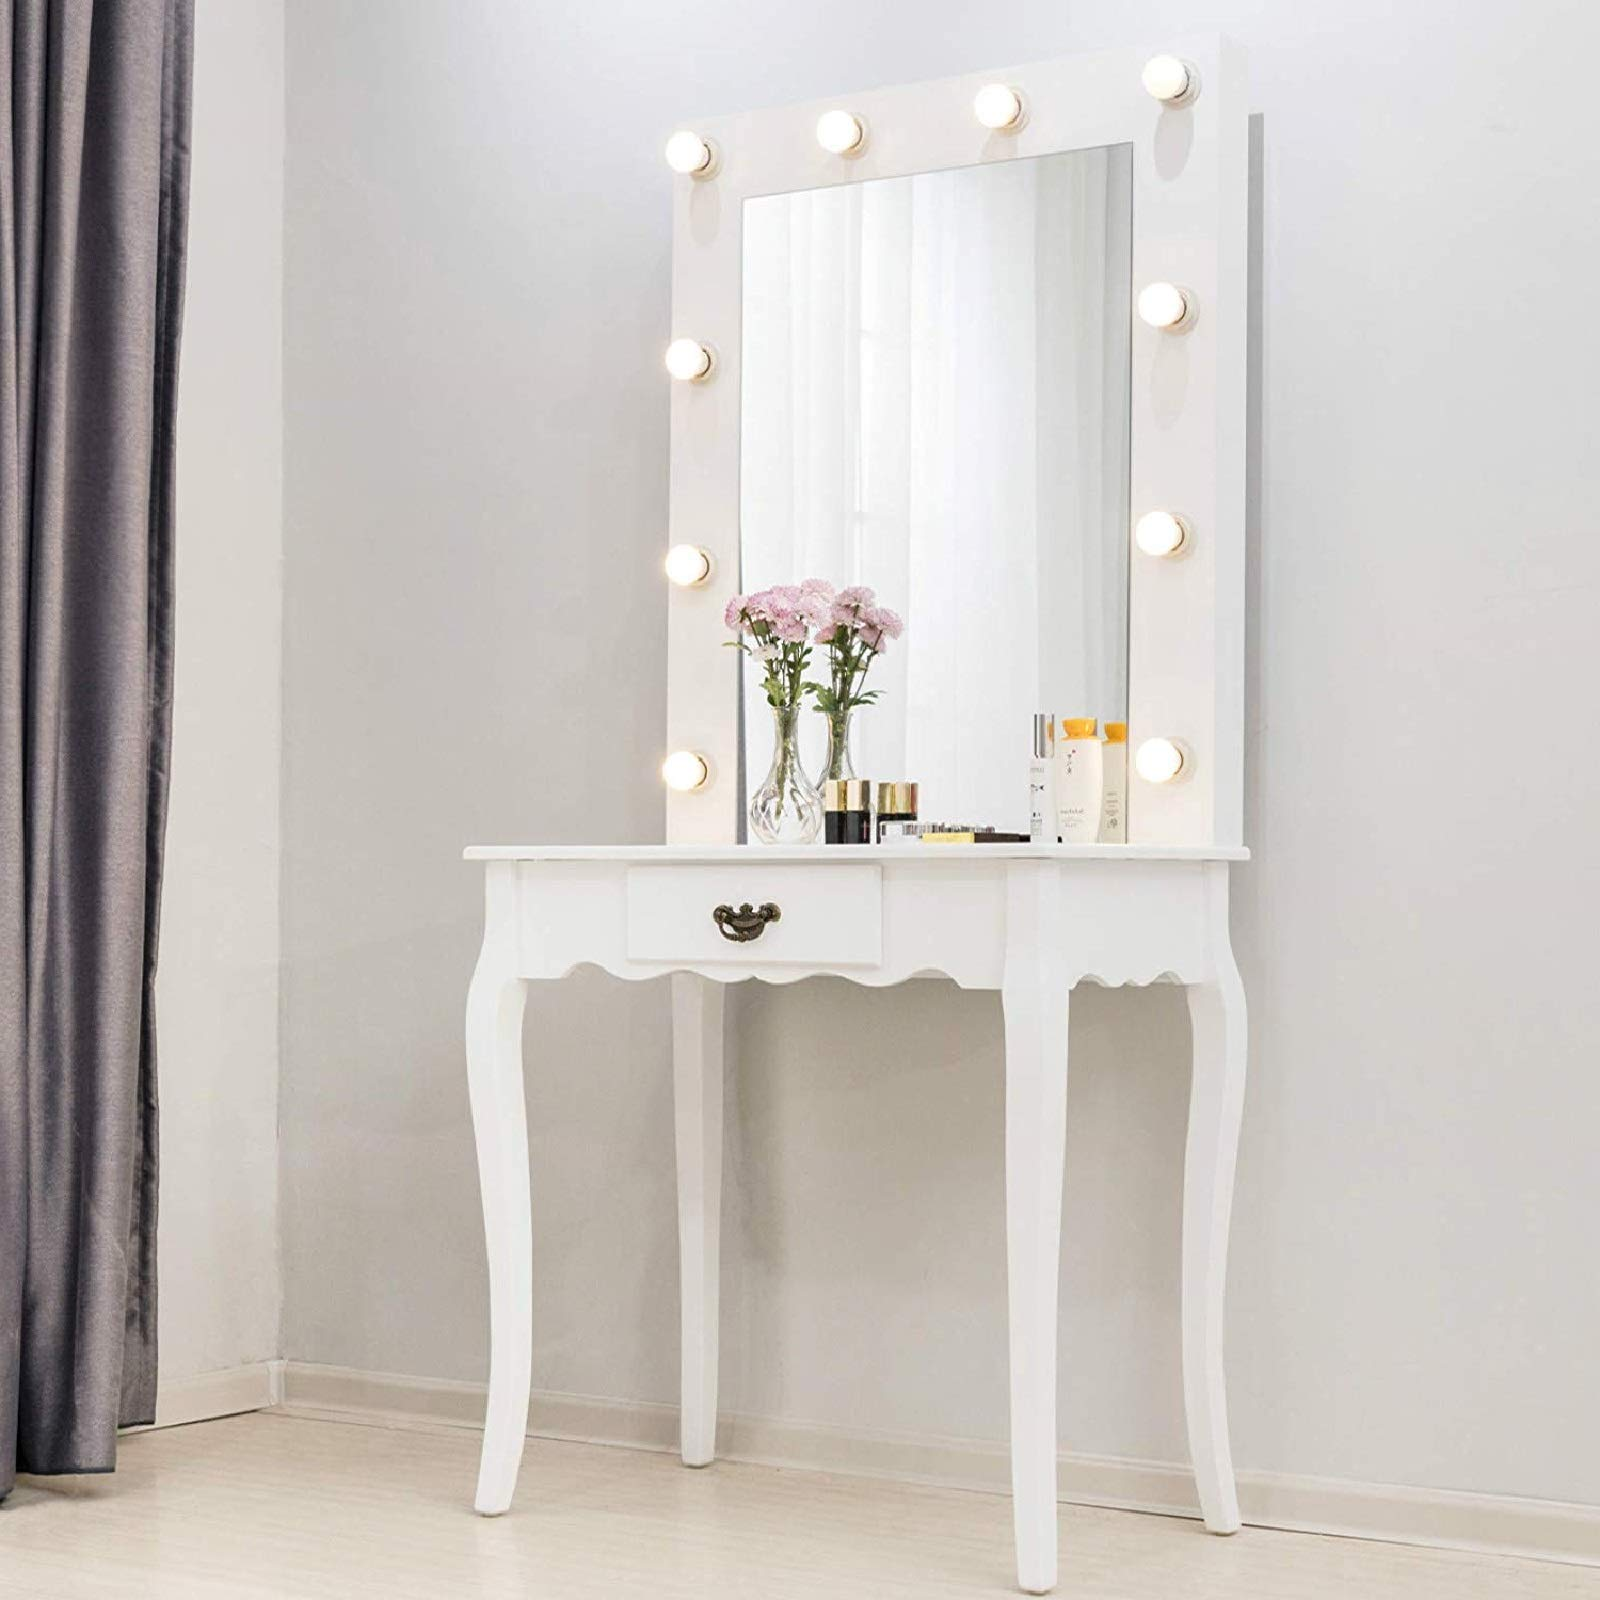 Mecor Vanity Table w/10 LED Lighted Mirror,Makeup Desk with Drawer Wood Bedroom Bathroom Dressing Table Furniture Girls Women Gifts White